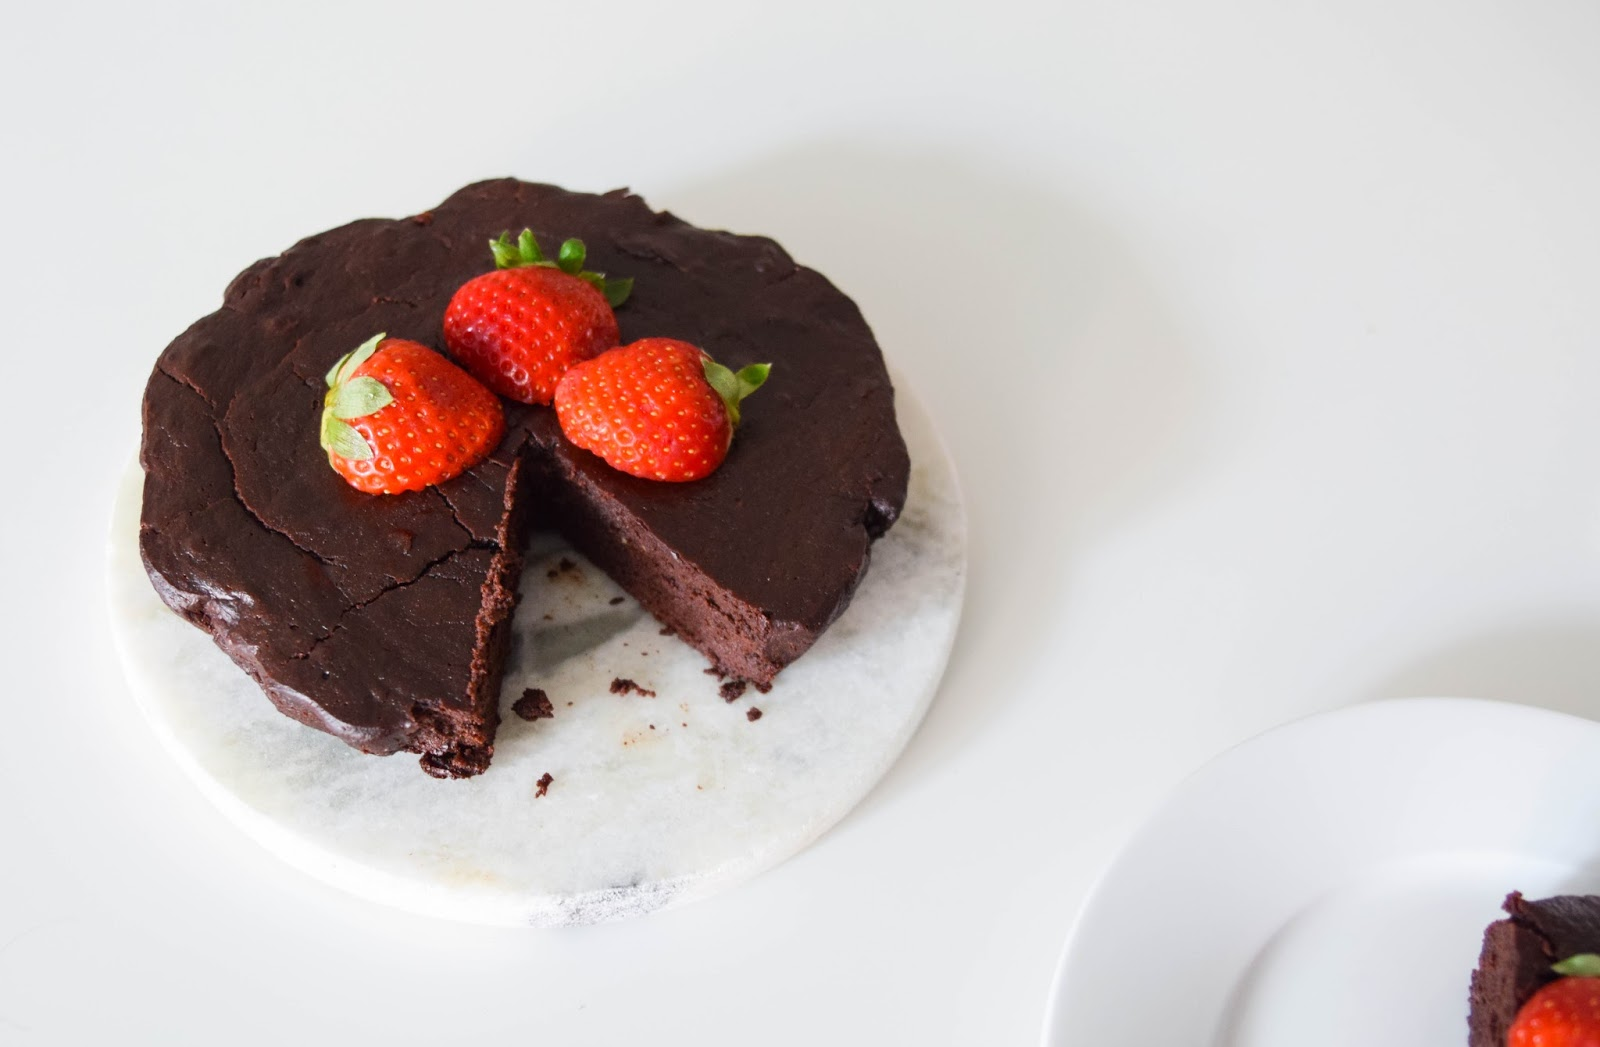 A Treat for the Healthy Eaters: Flourless Chocolate Cake